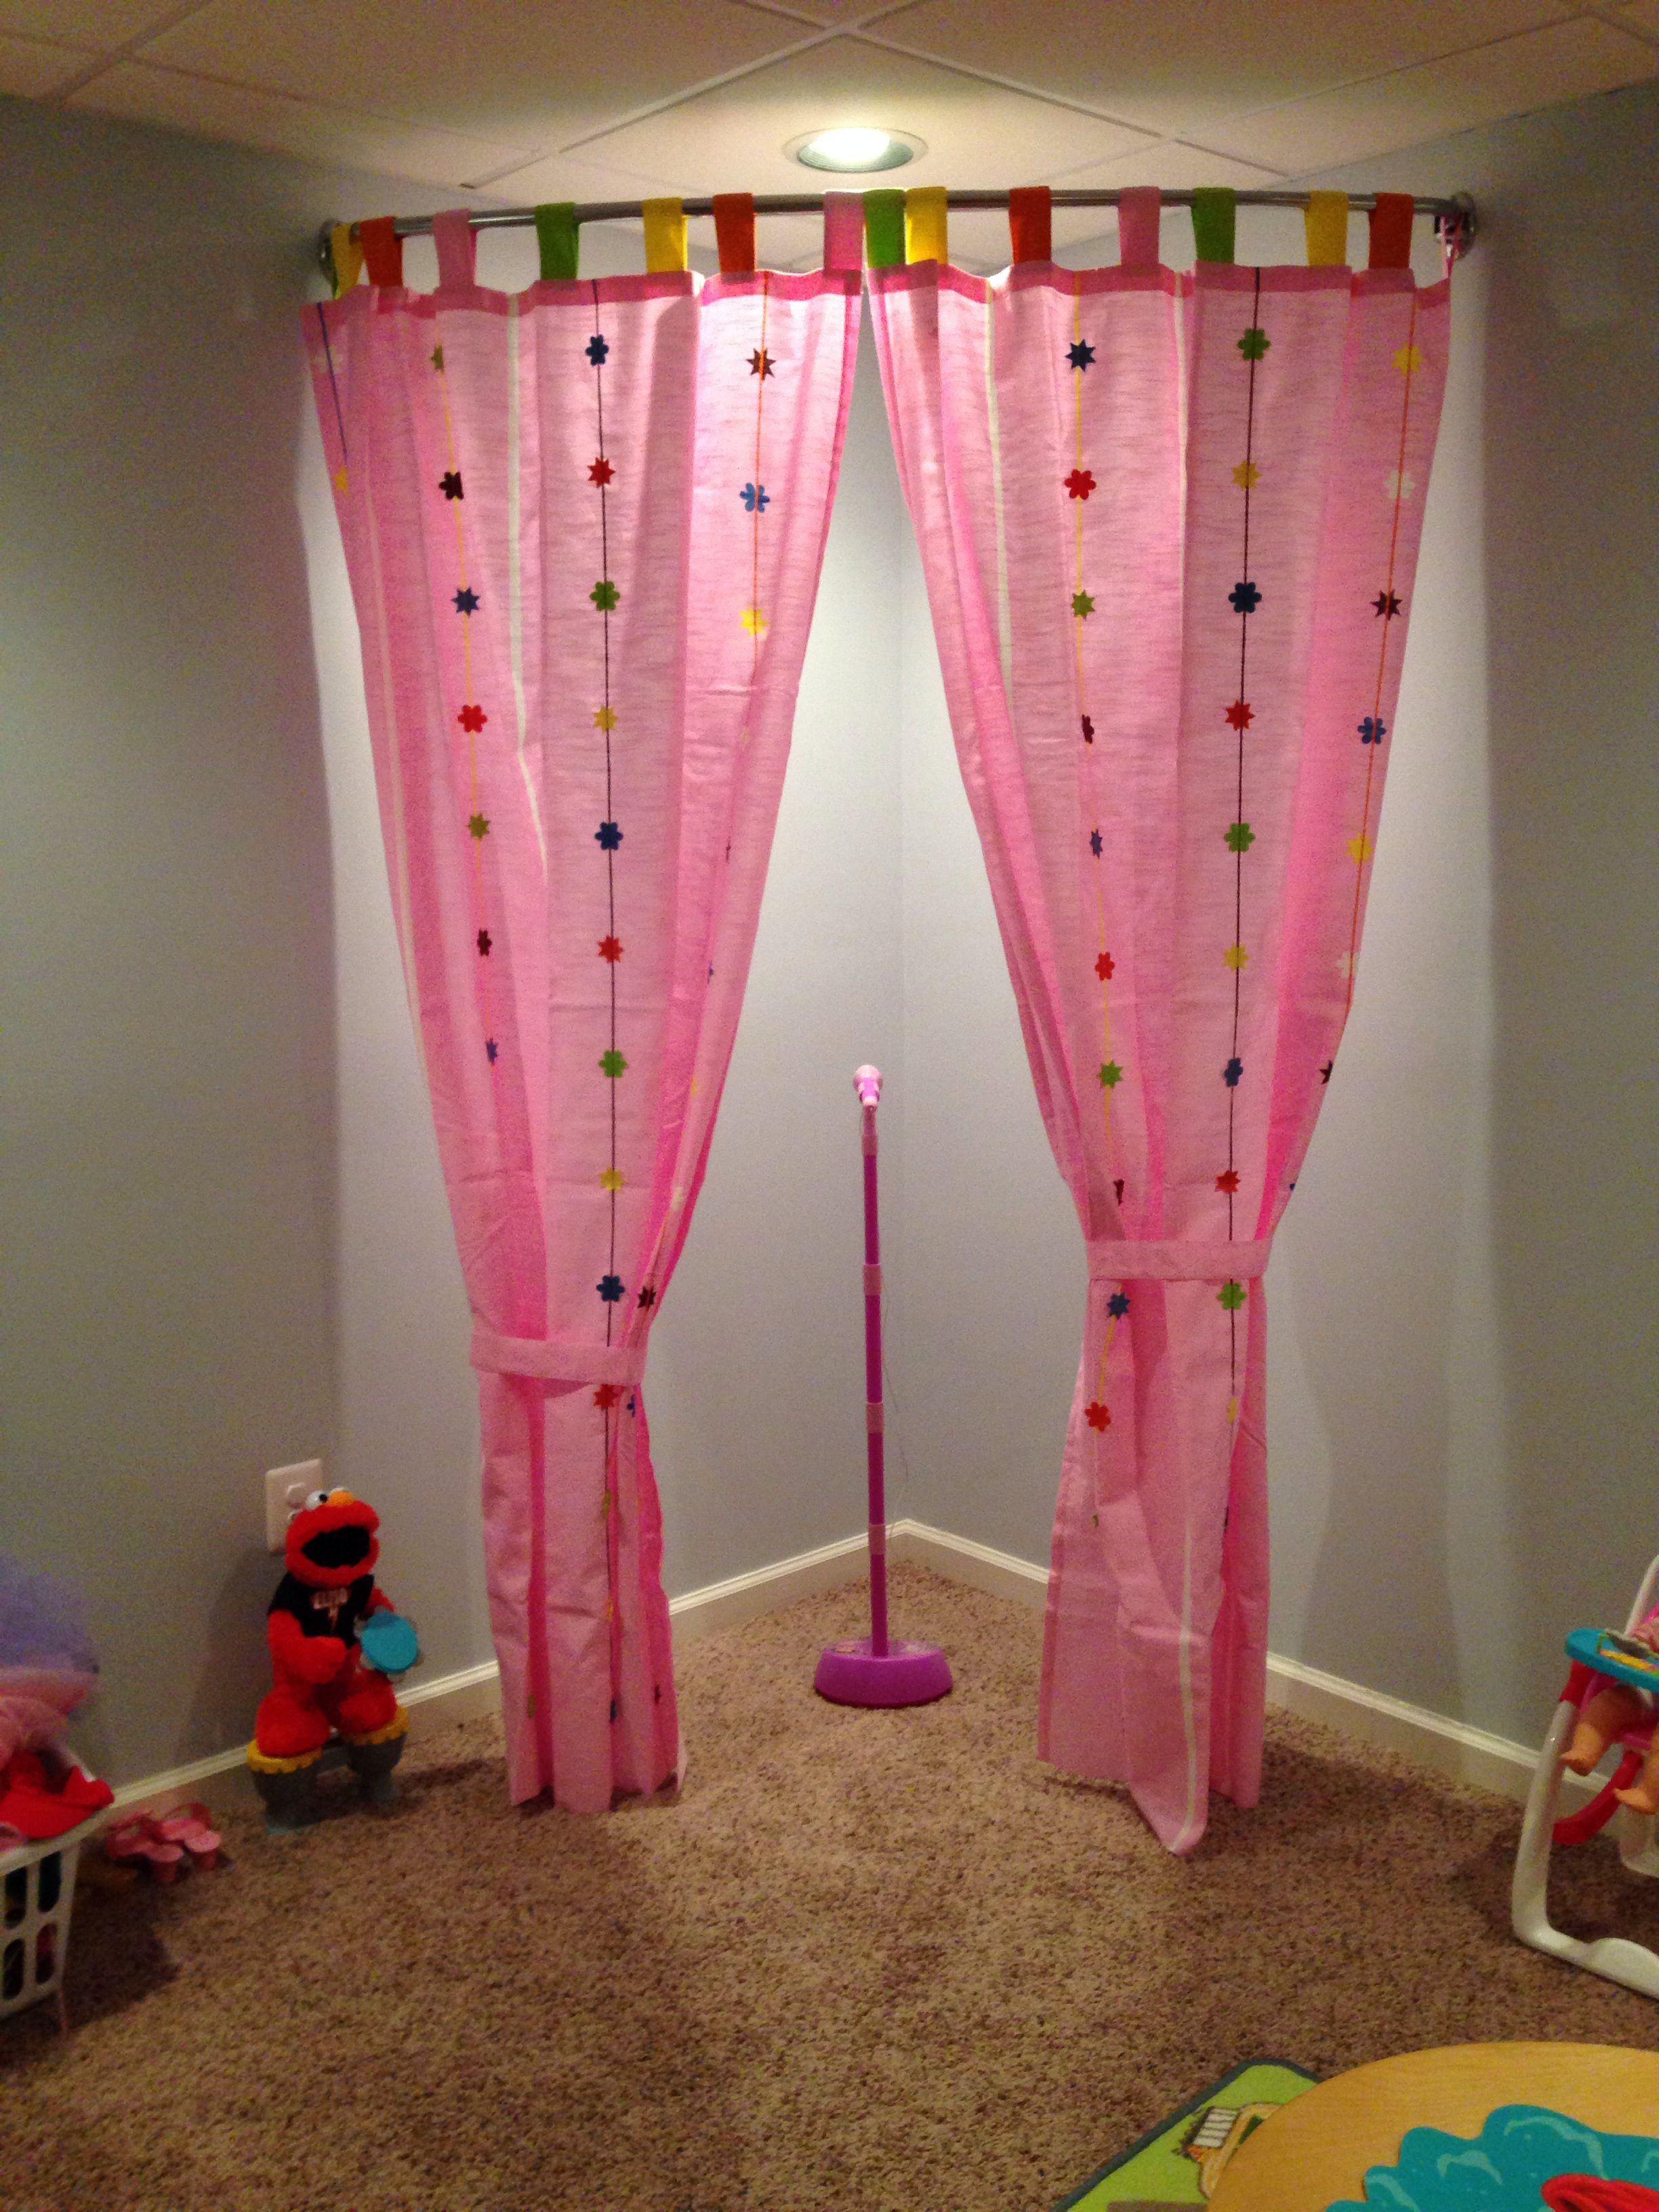 Here's A Playroom Stage Idea I Used A Curved Shower Curtain